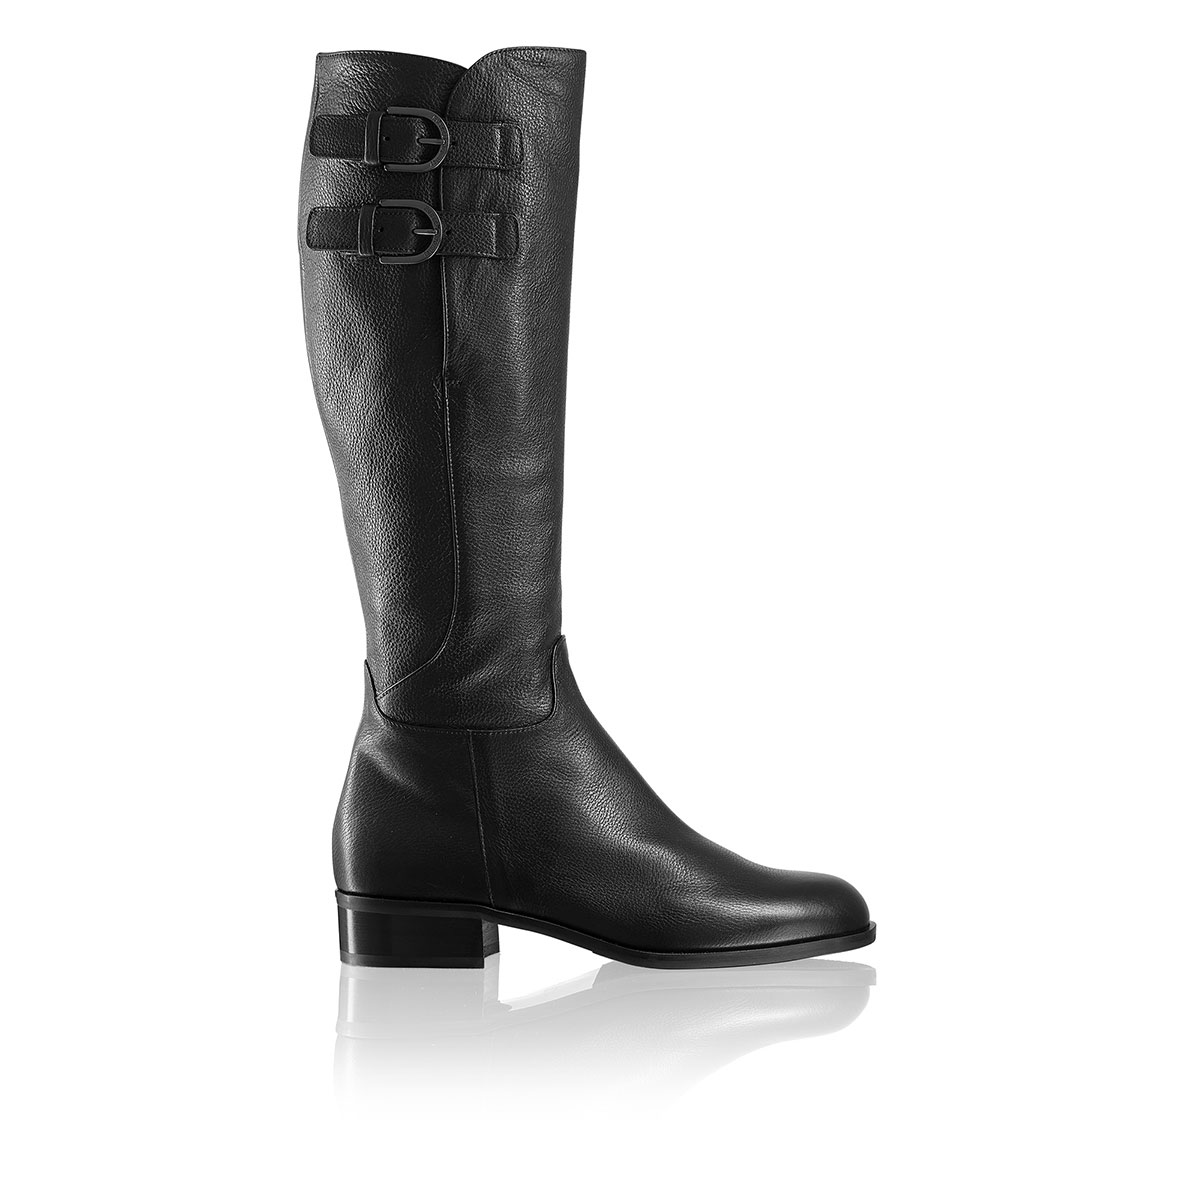 Russell And Bromley GOODWOOD Double Buckle Riding Boot